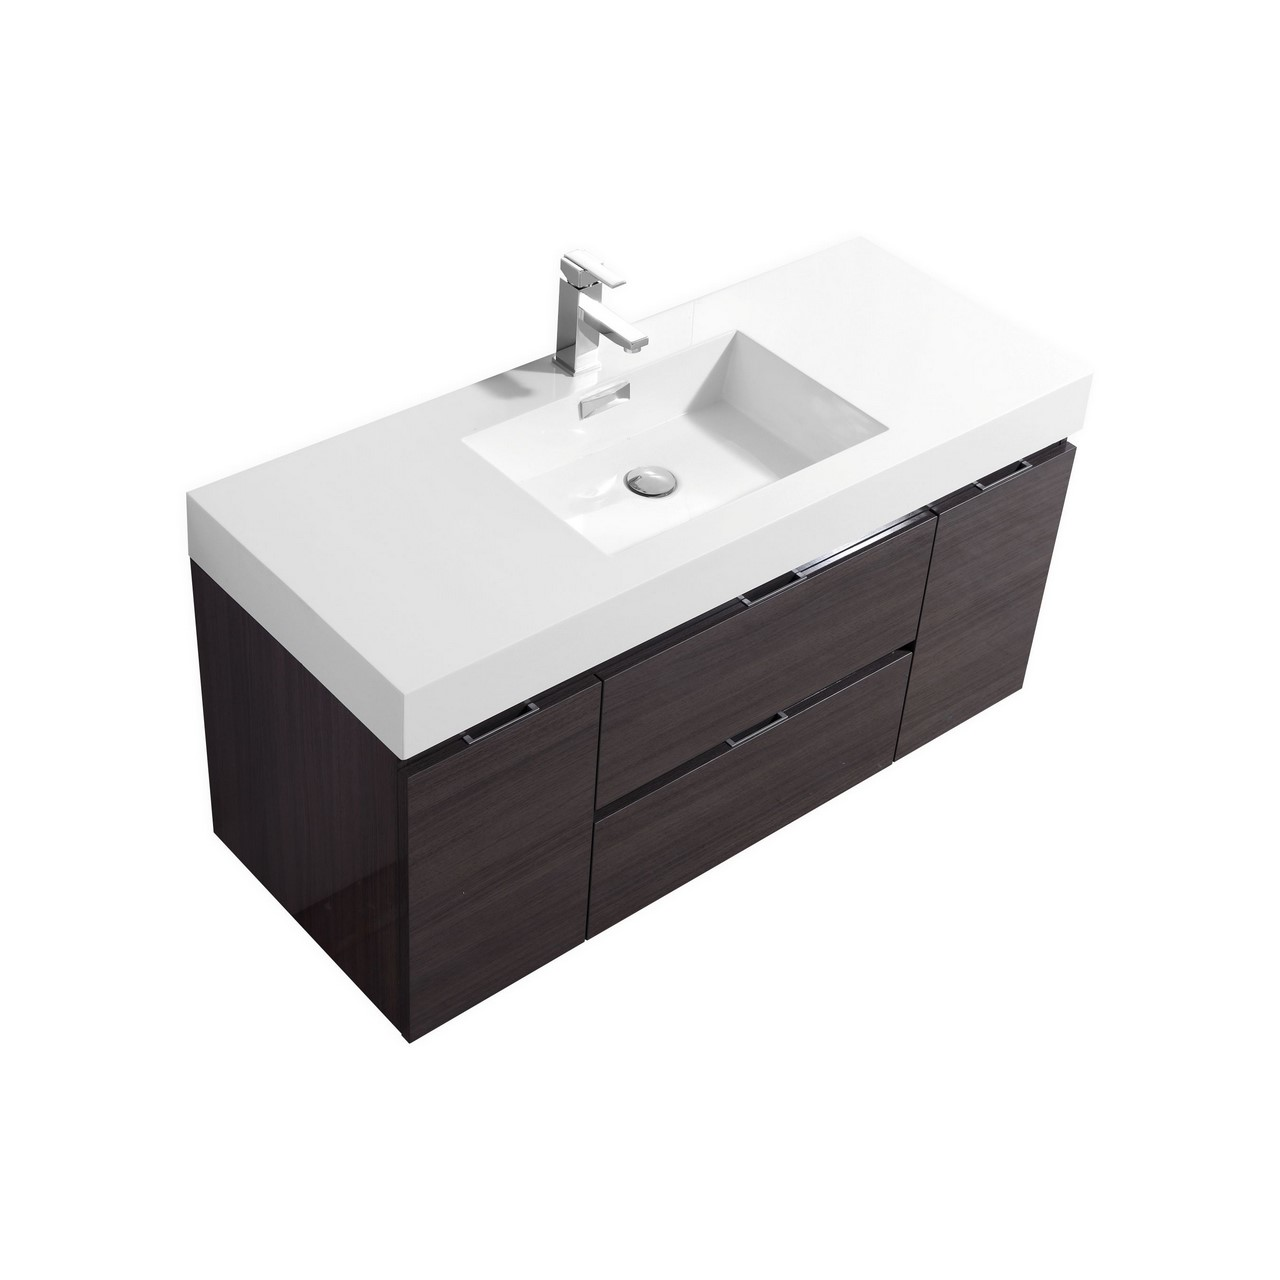 bliss 48 high gloss gray oak wall mount single sink modern bathroom vanity